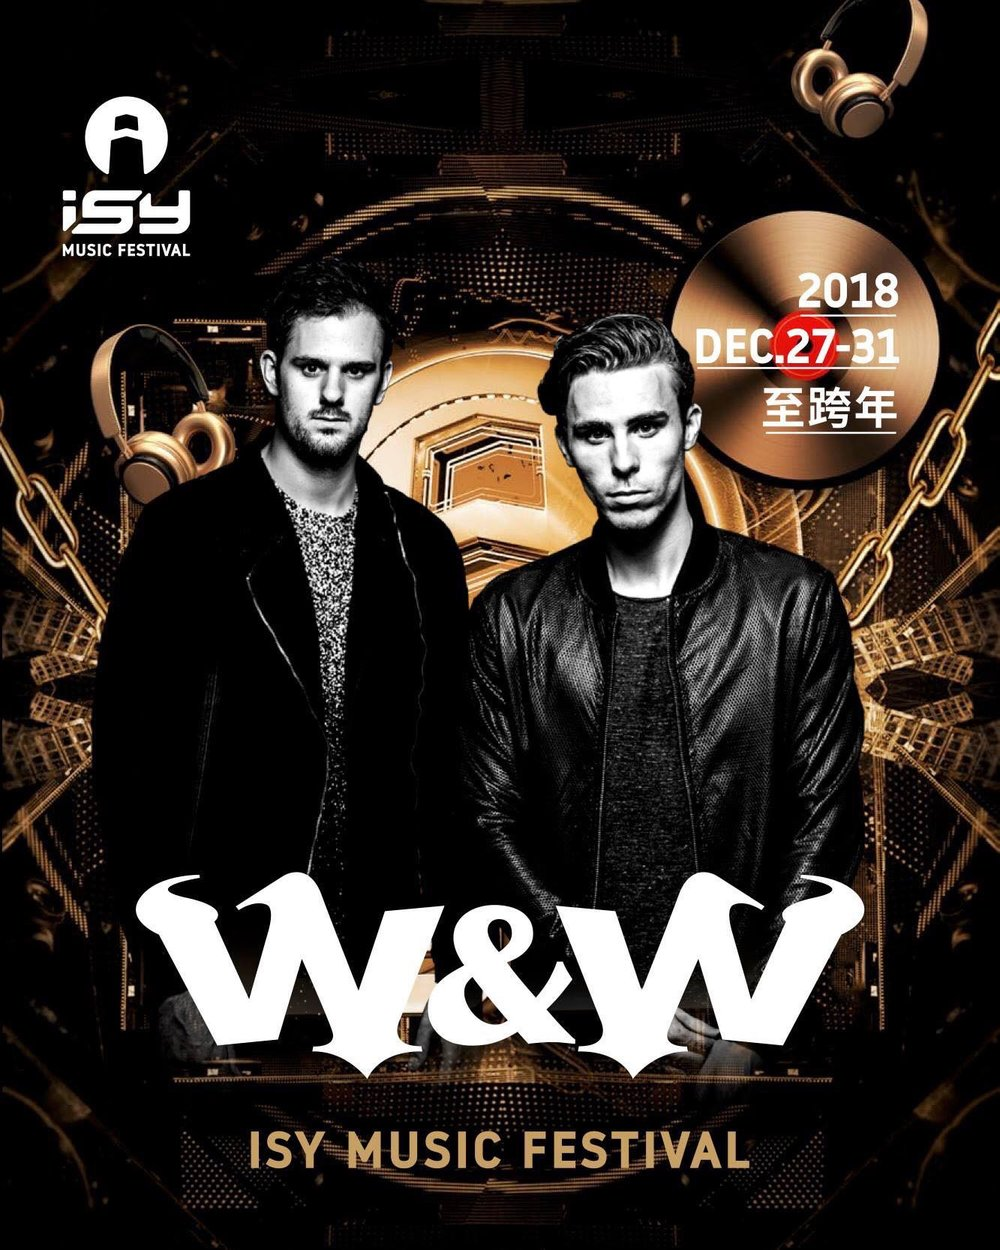 W&W - is a Dutch DJ and record producer duo composed of Willem van Hanegem and Ward van der Harst. After producing trance for five years, W&W founded their own record label called Mainstage Music, and became active in the big room house and progressive house scene.